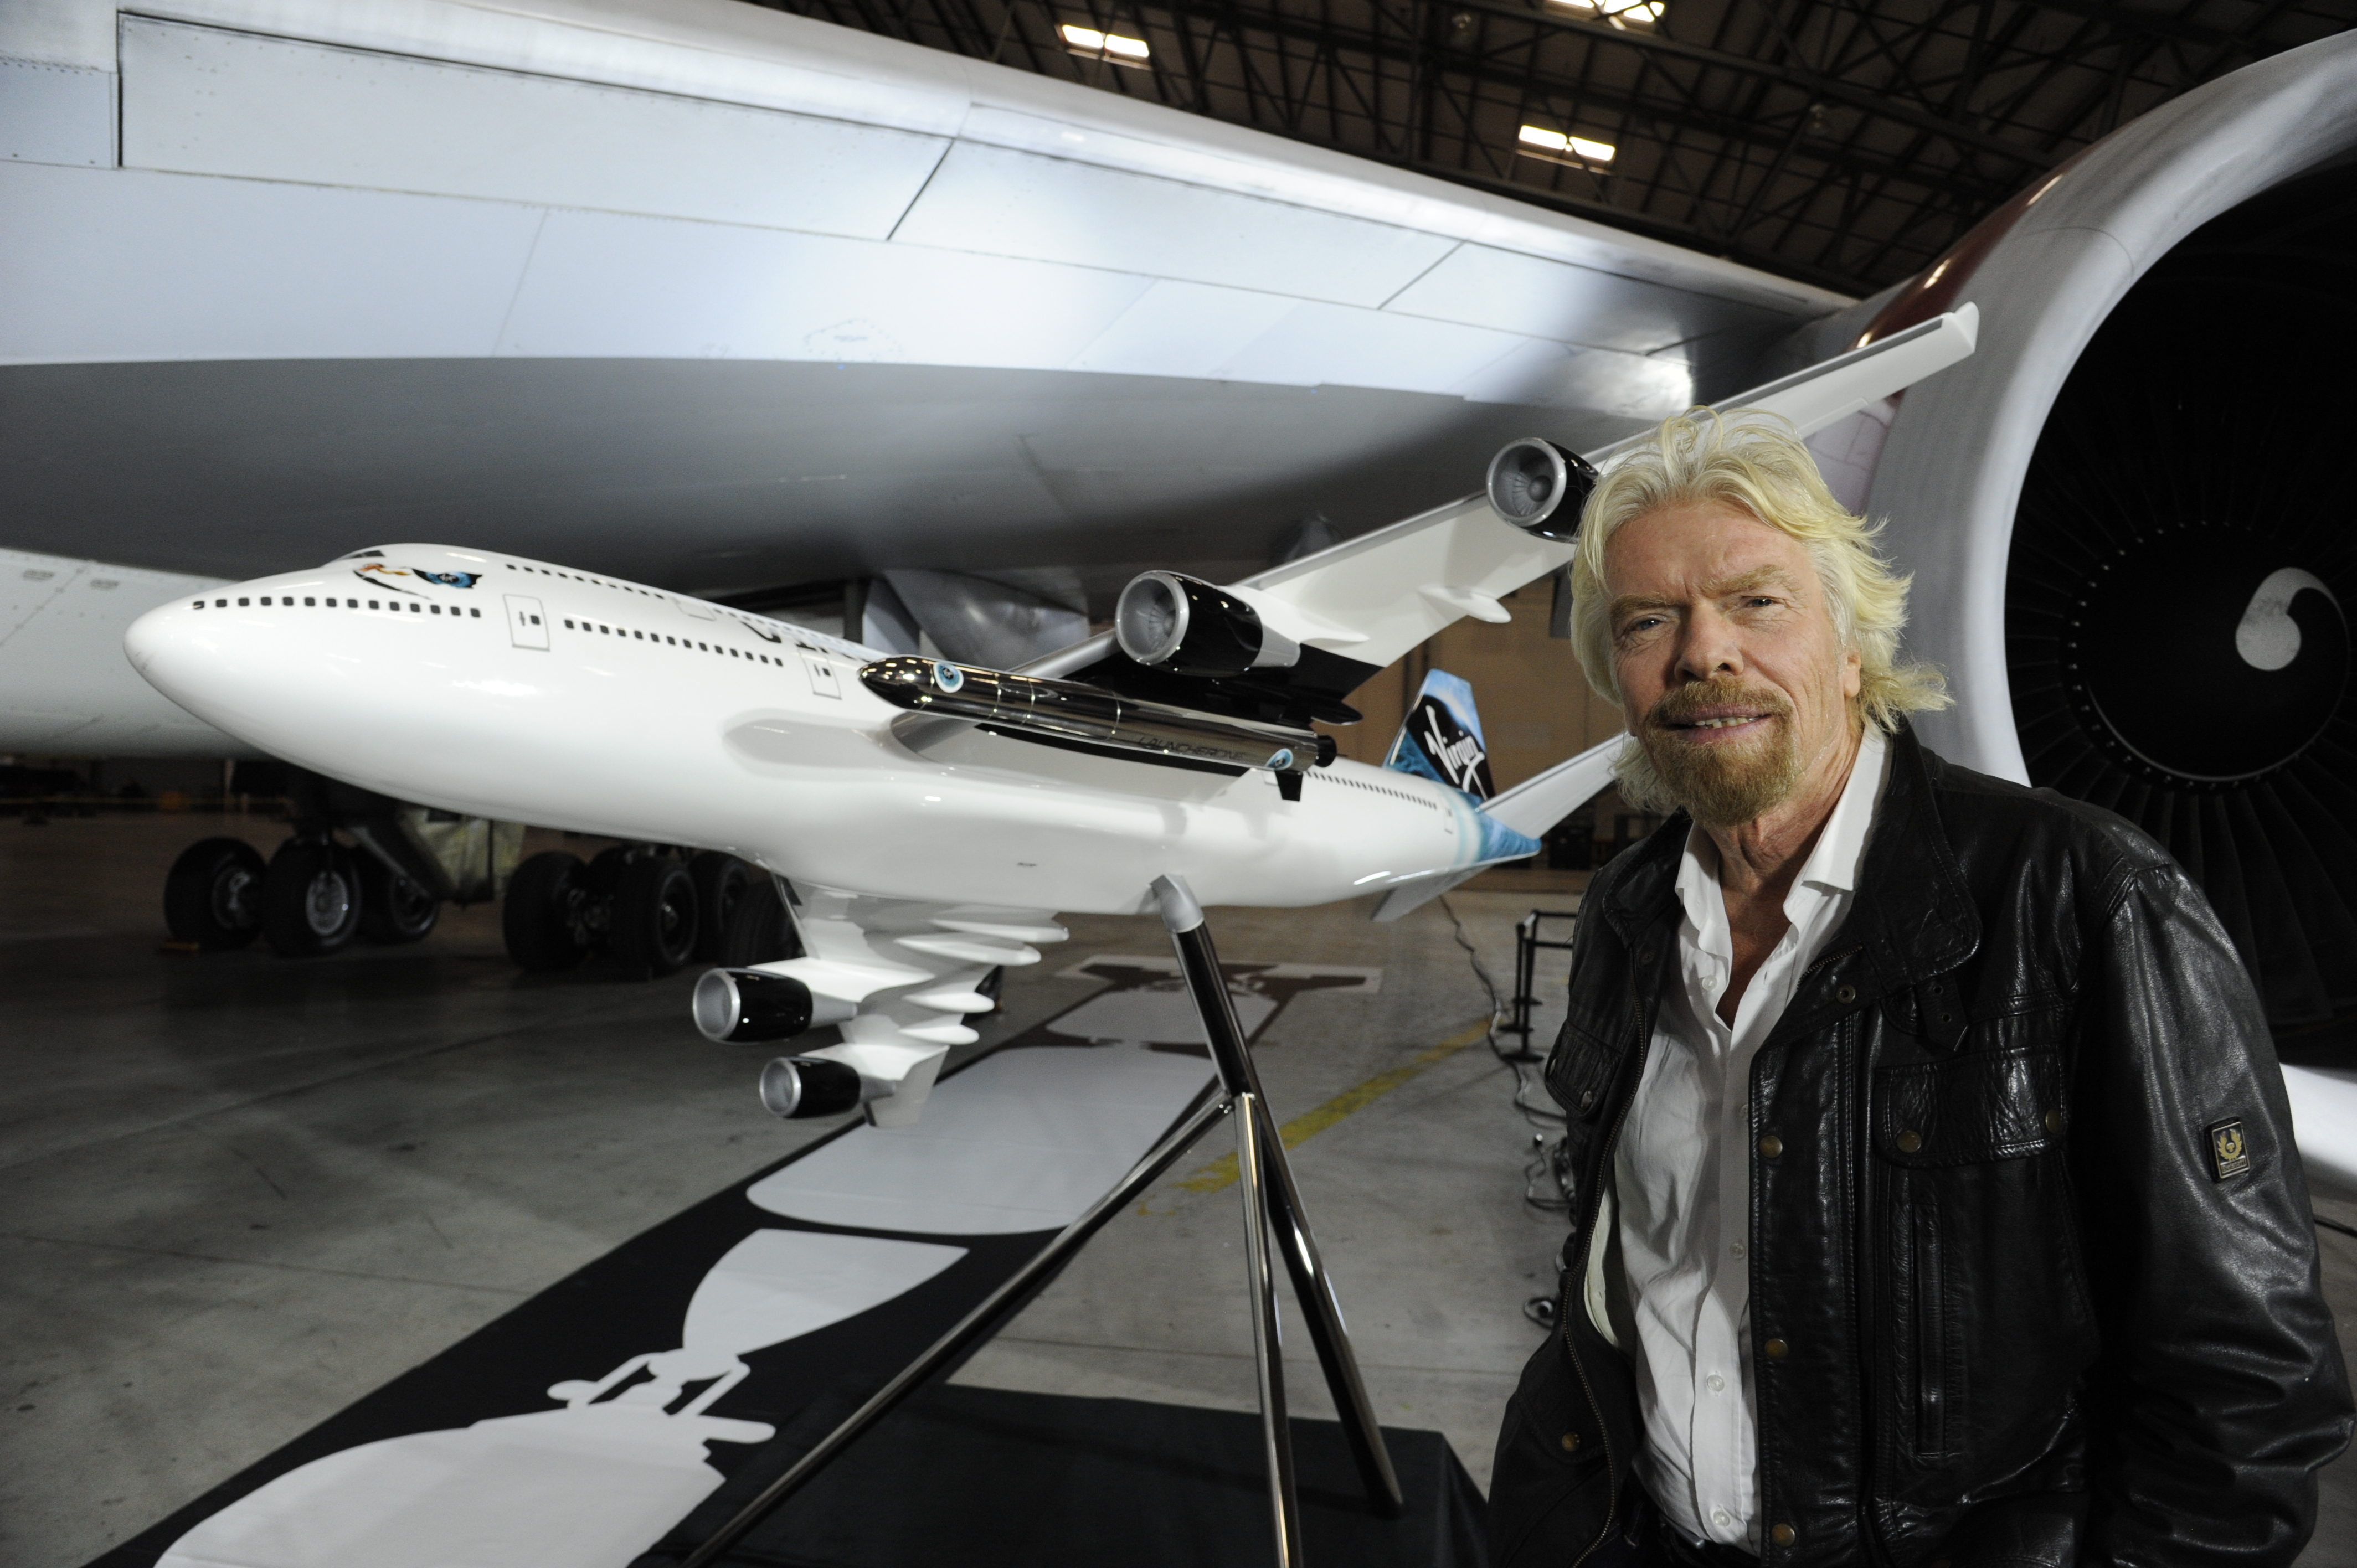 Virgin Galactic founder Richard Branson in front of a model of the repurposed Boeing 747 that will be used to launch the LauncherOne rocket.